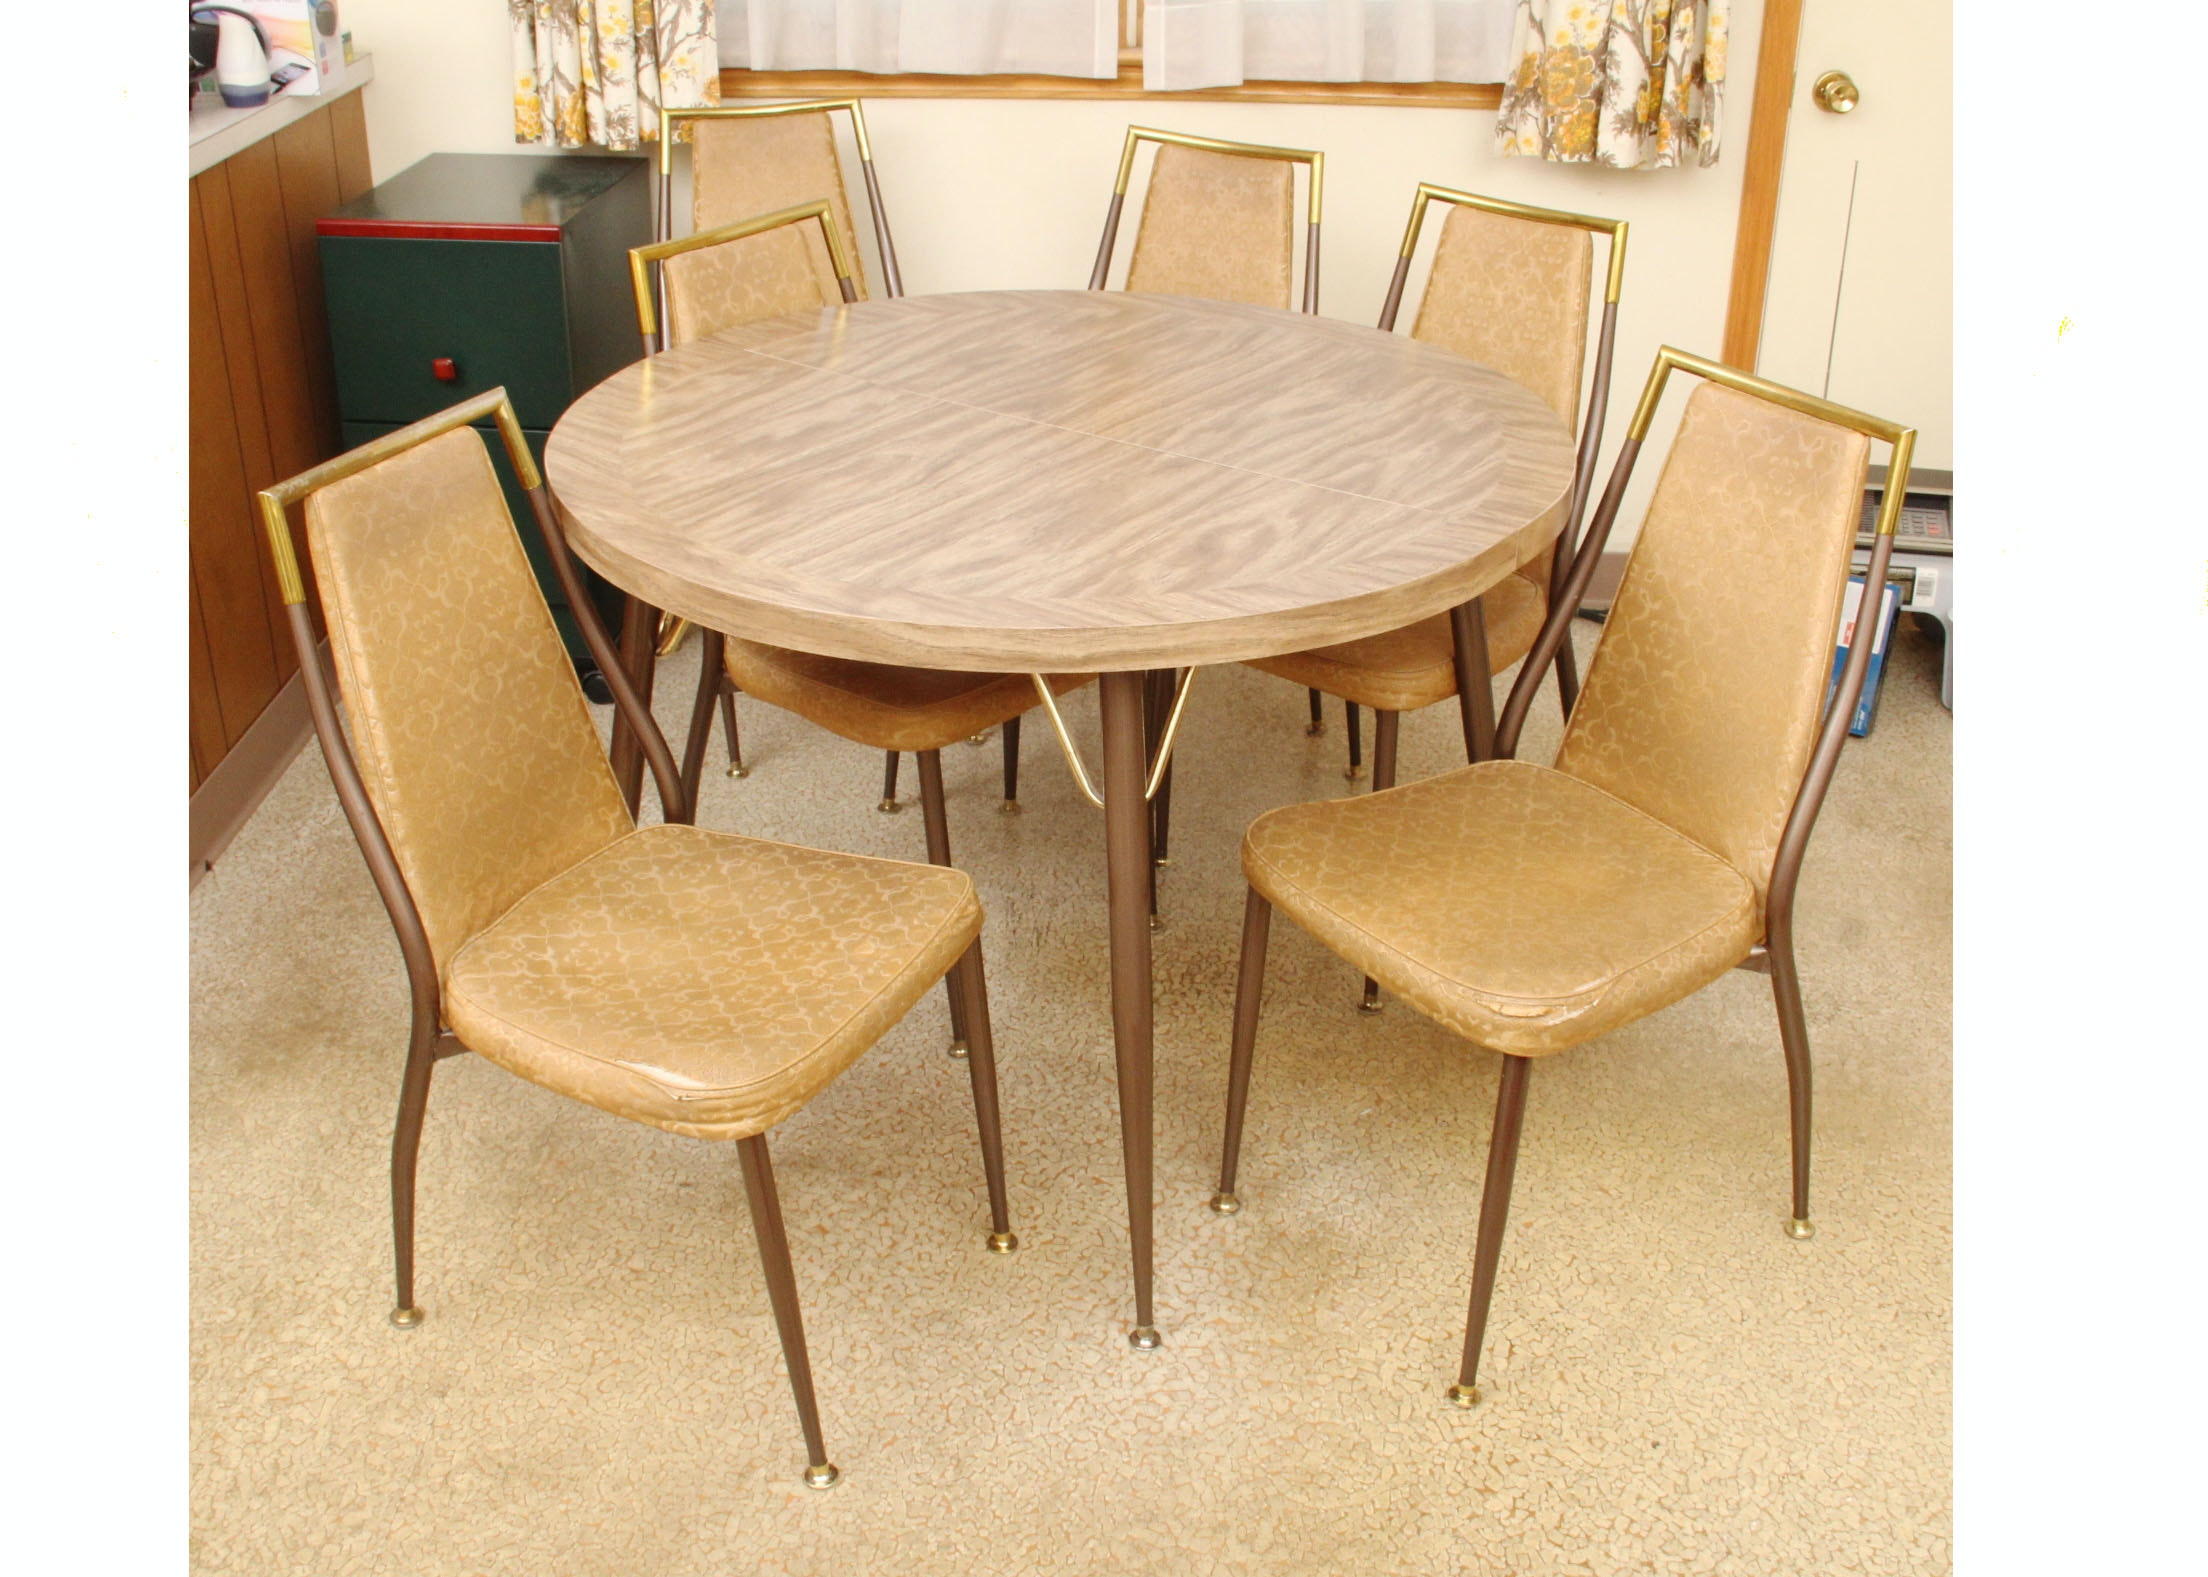 1960s Retro Kitchen Table And Chairs